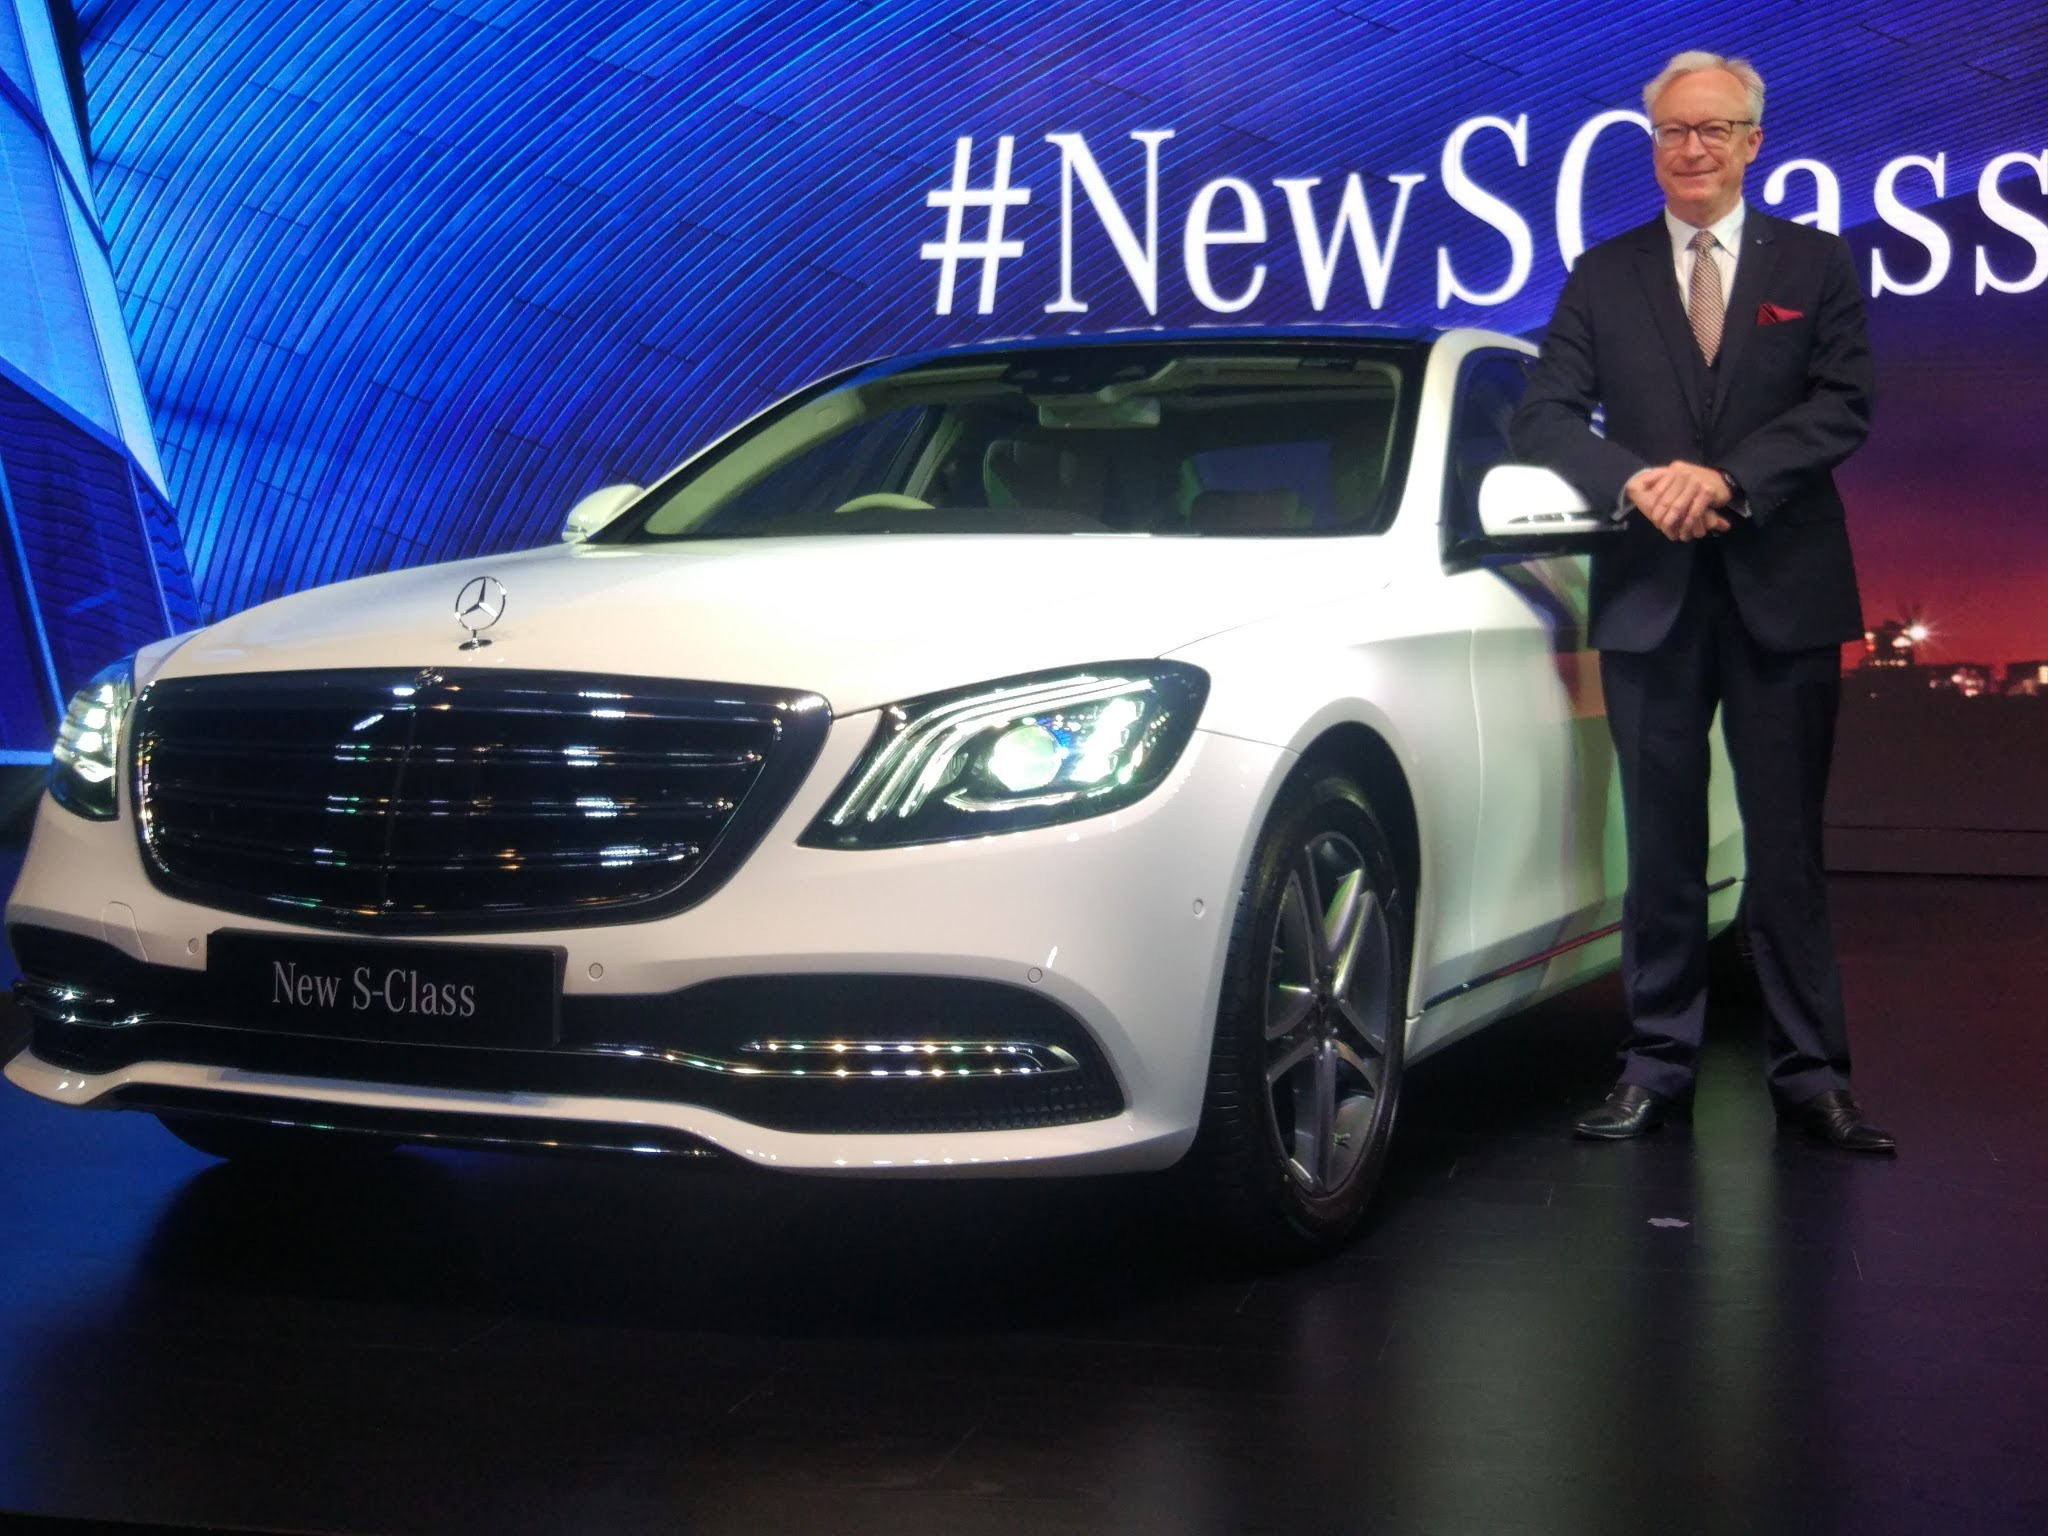 2018 Mercedes Benz S Class Facelift Launched Price In India Starts